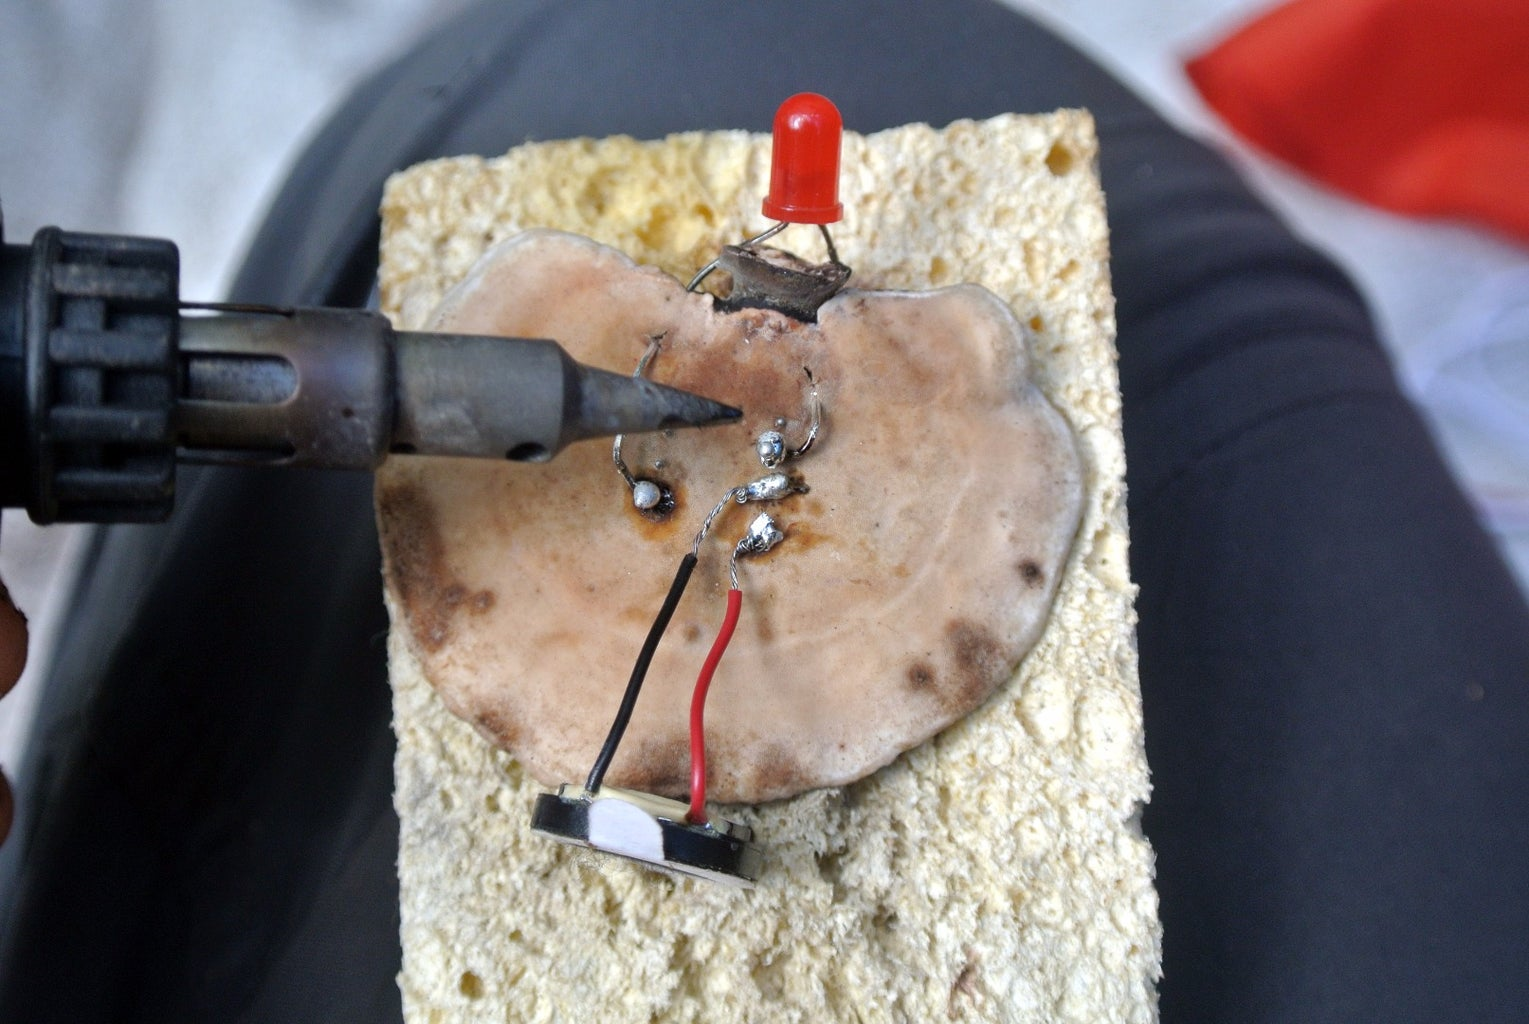 Connecting Microcontroller and Speaker